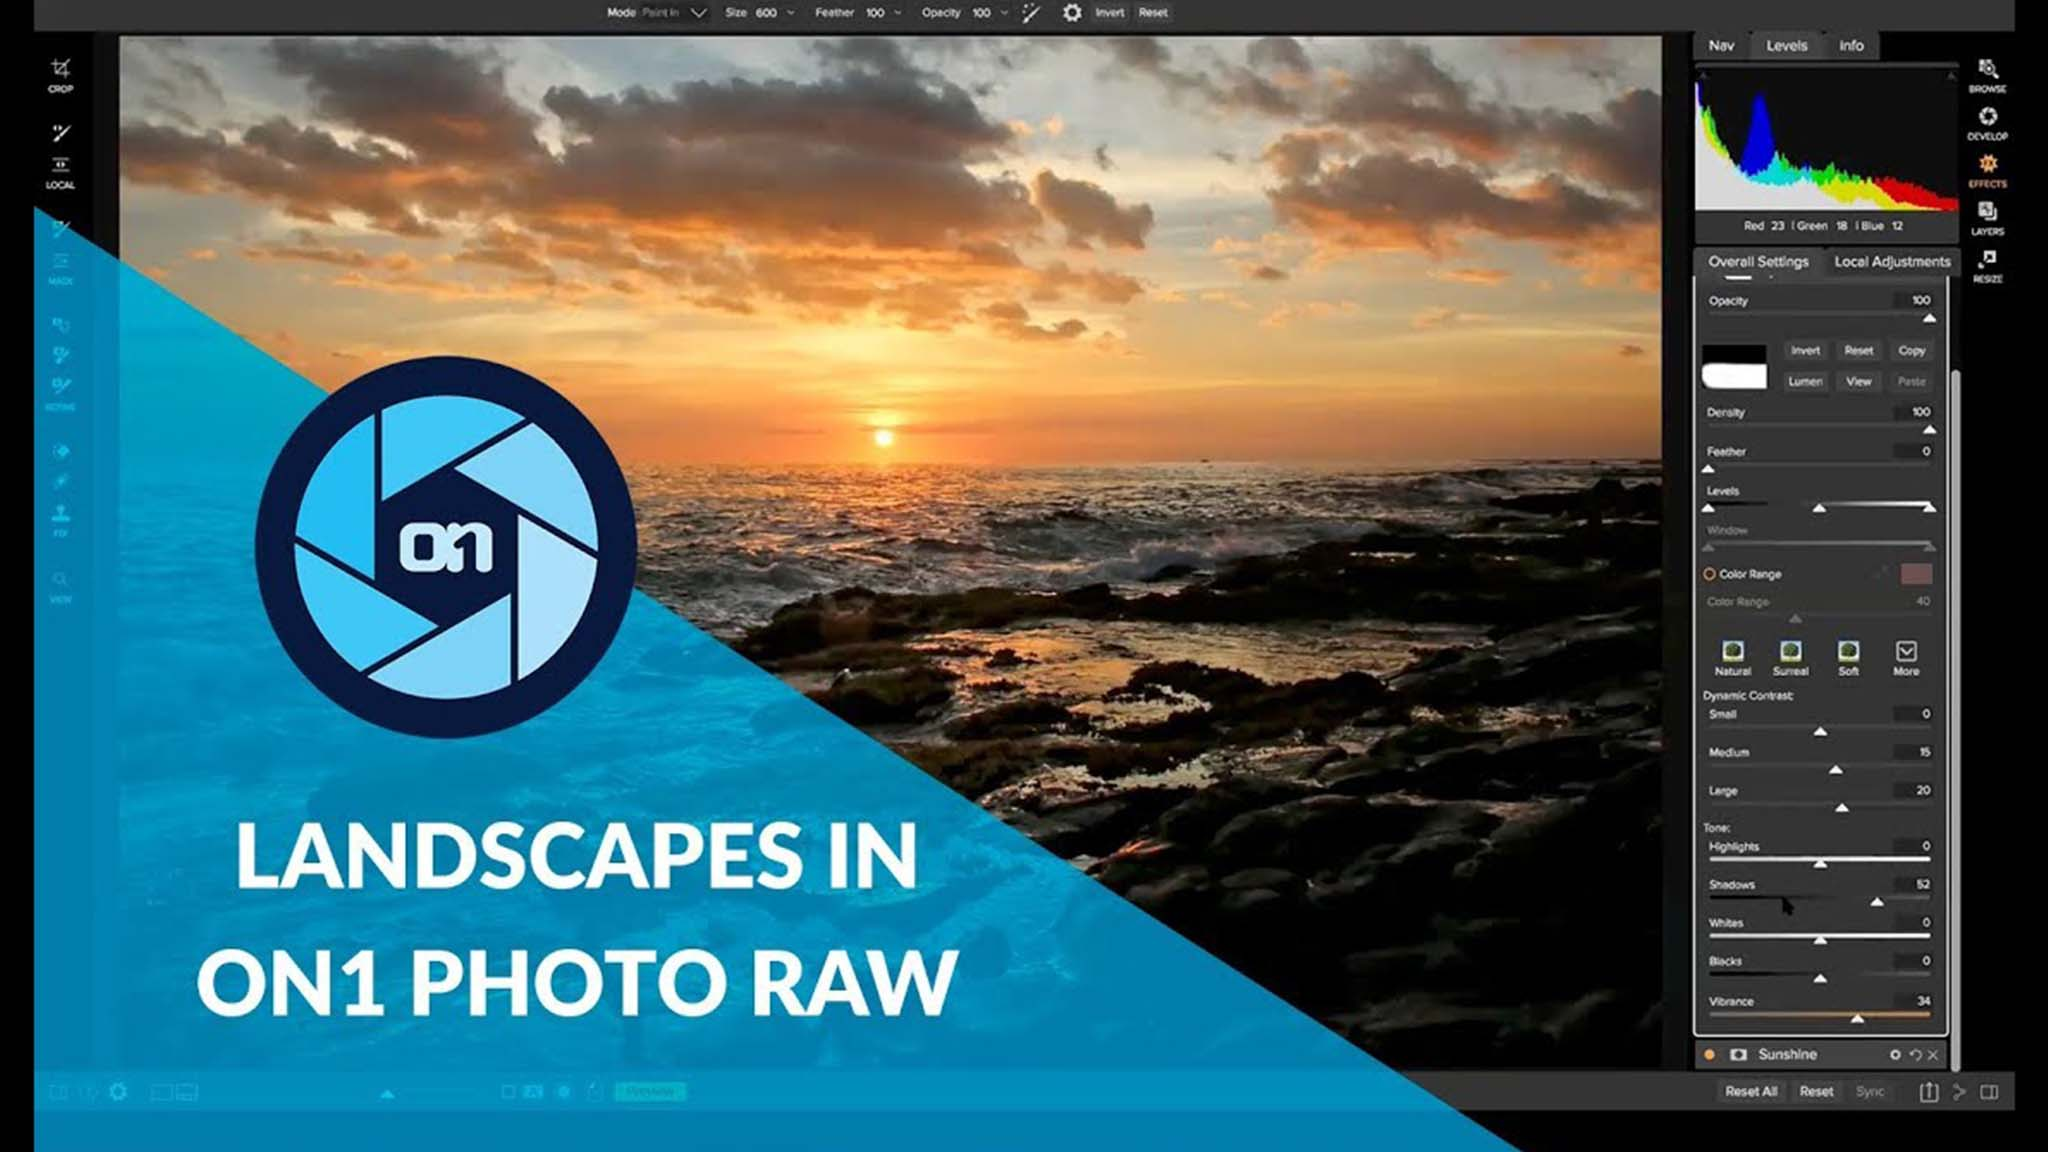 Landscapes in ON1 Photo RAW